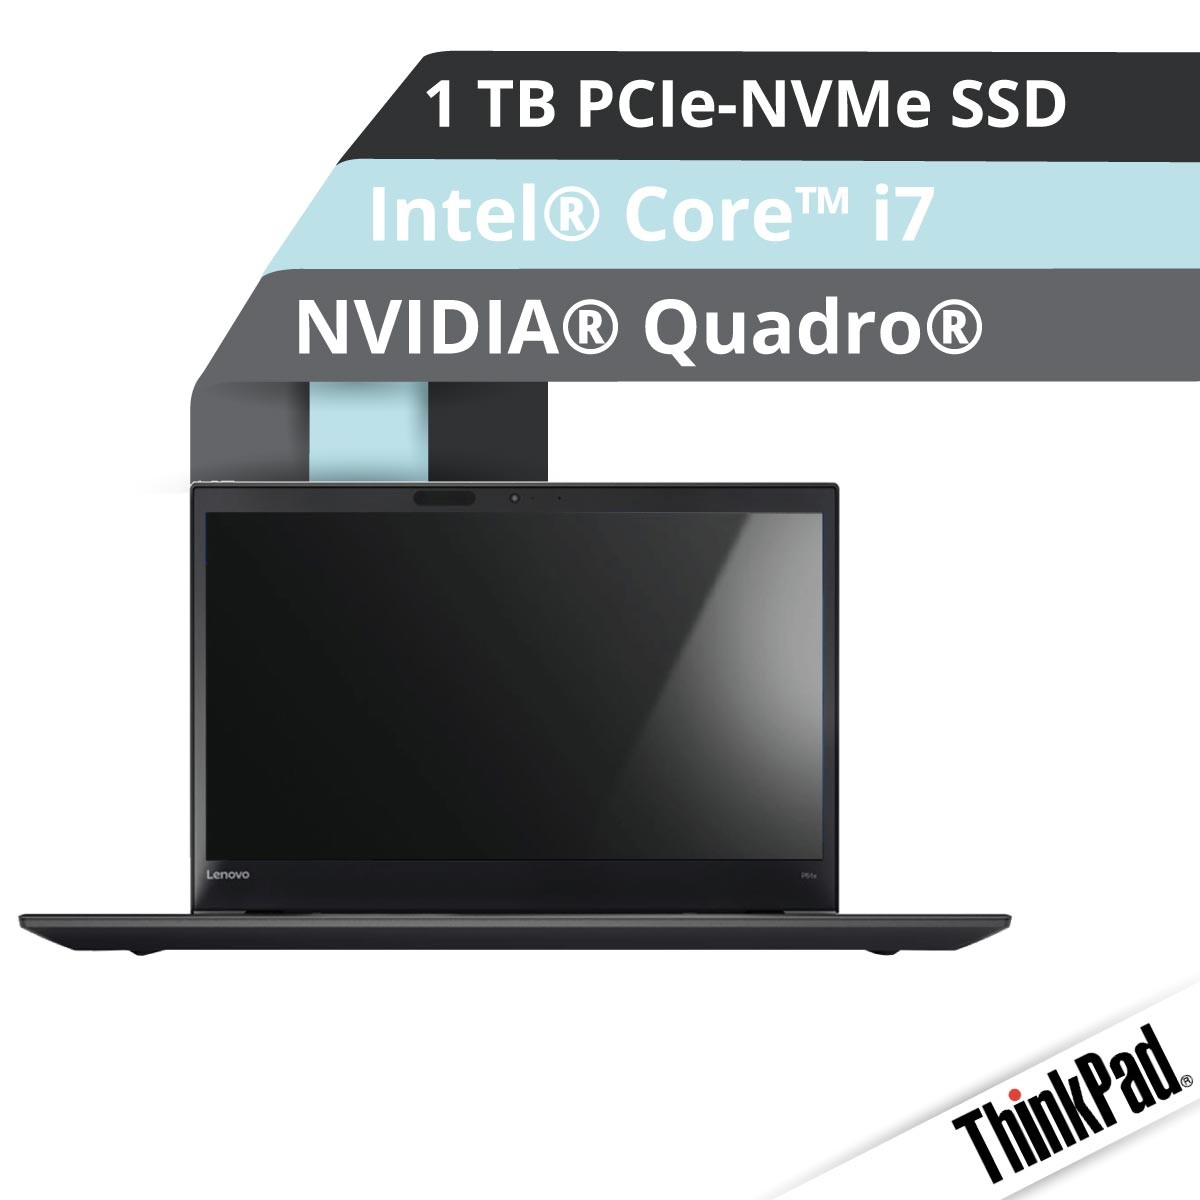 (EOL) Lenovo™ ThinkPad® P51s Workstation Modell 20HB-000S